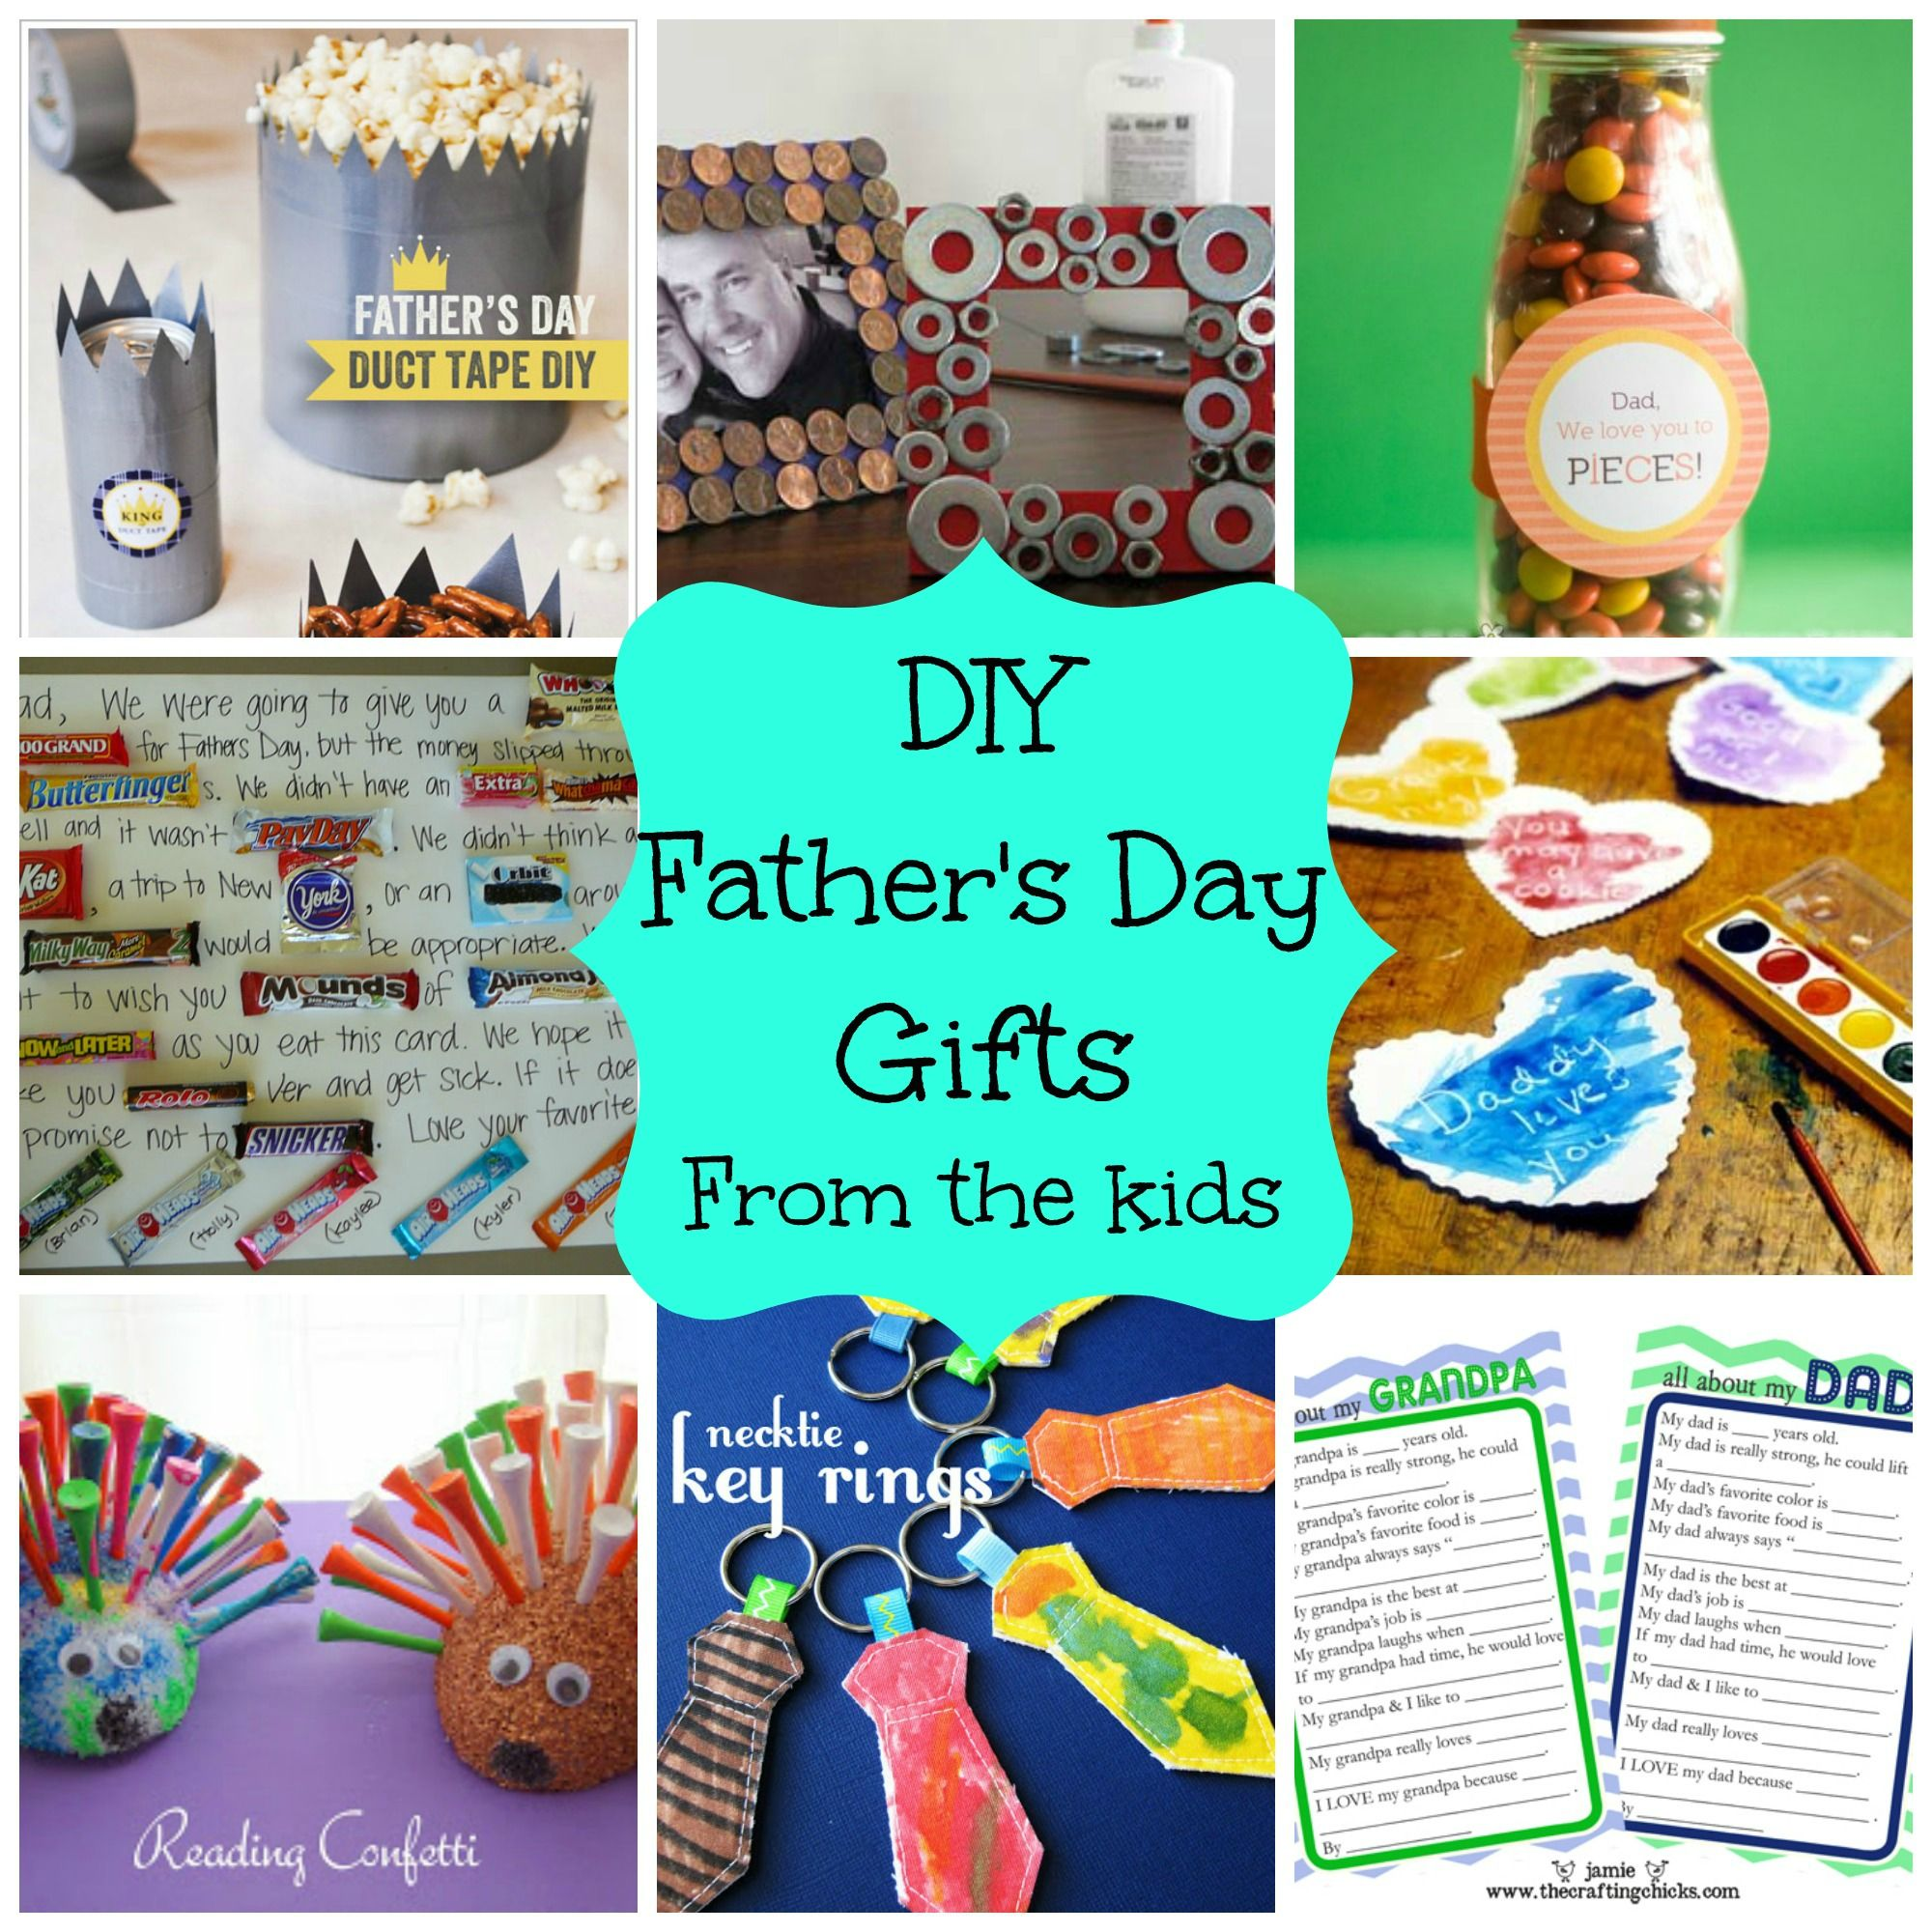 diy kids presents for dad | DIY Father's Day Gifts From Kids ...